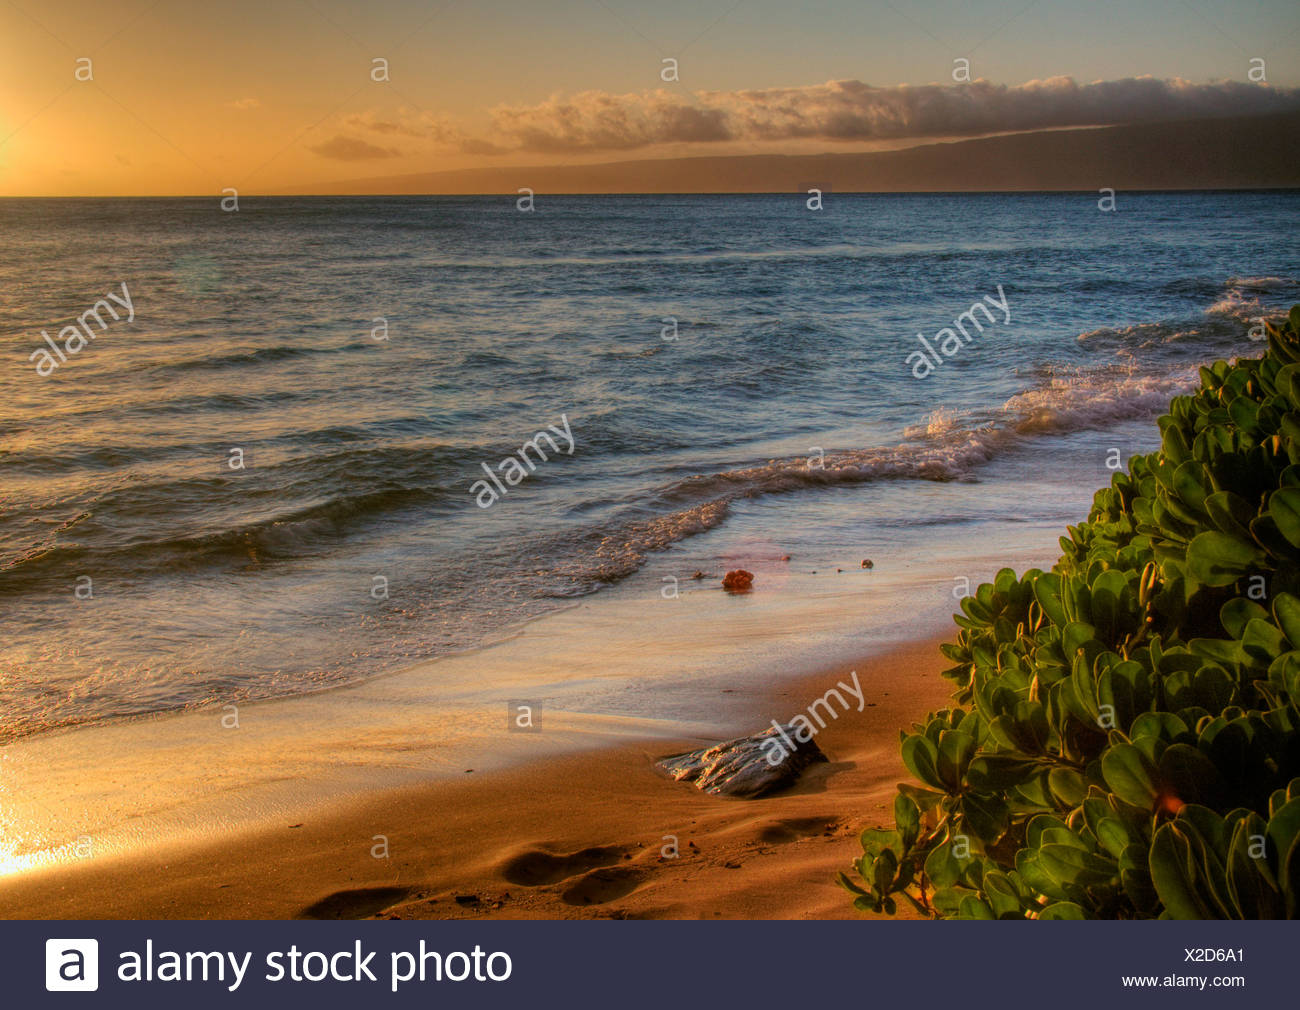 Sunsets warm glow on golden sand beach, West Maui, Hawaii. Island of Lanai in the distance - Stock Image